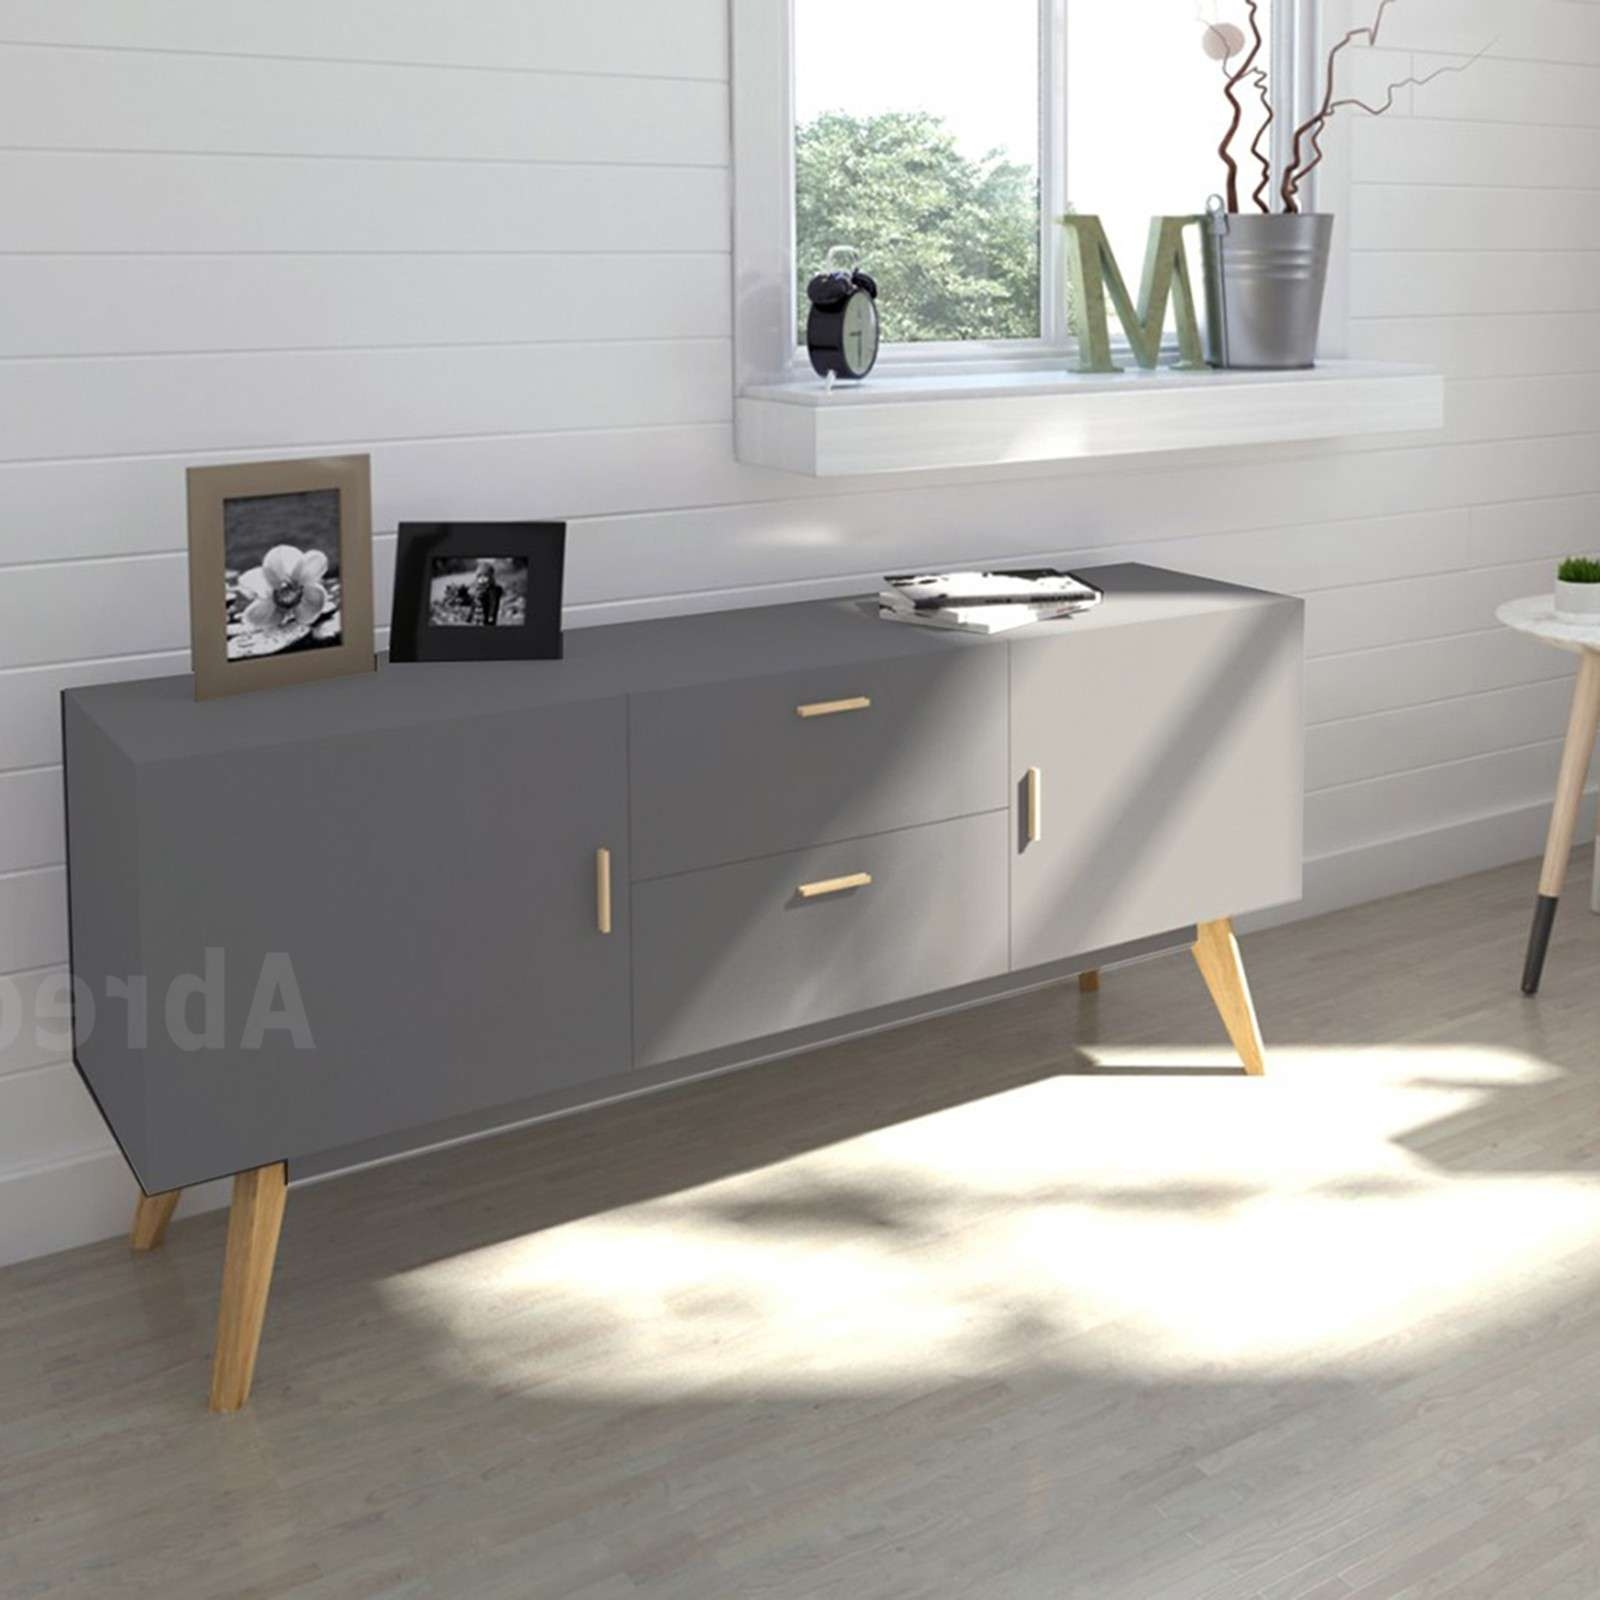 Scandinavian Retro Style White Sideboard Abreo Home Furniture Regarding Scandinavian Sideboards (View 14 of 20)